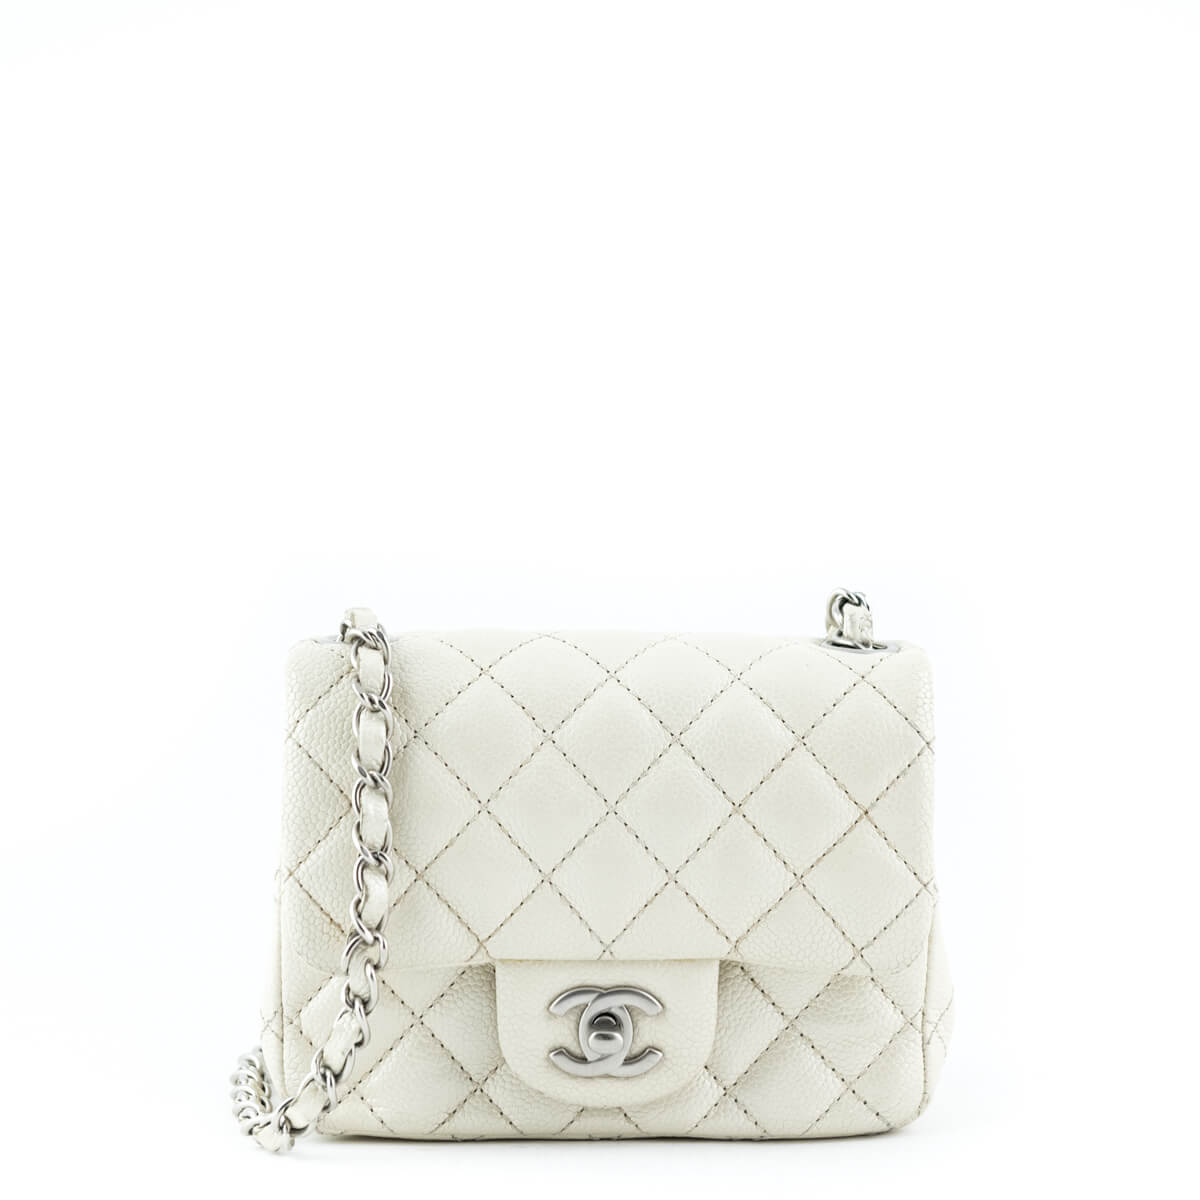 6830c849f54500 Chanel Metallic Ivory Caviar Mini Square Flap Bag - LOVE that BAG - Preowned  Authentic Designer ...